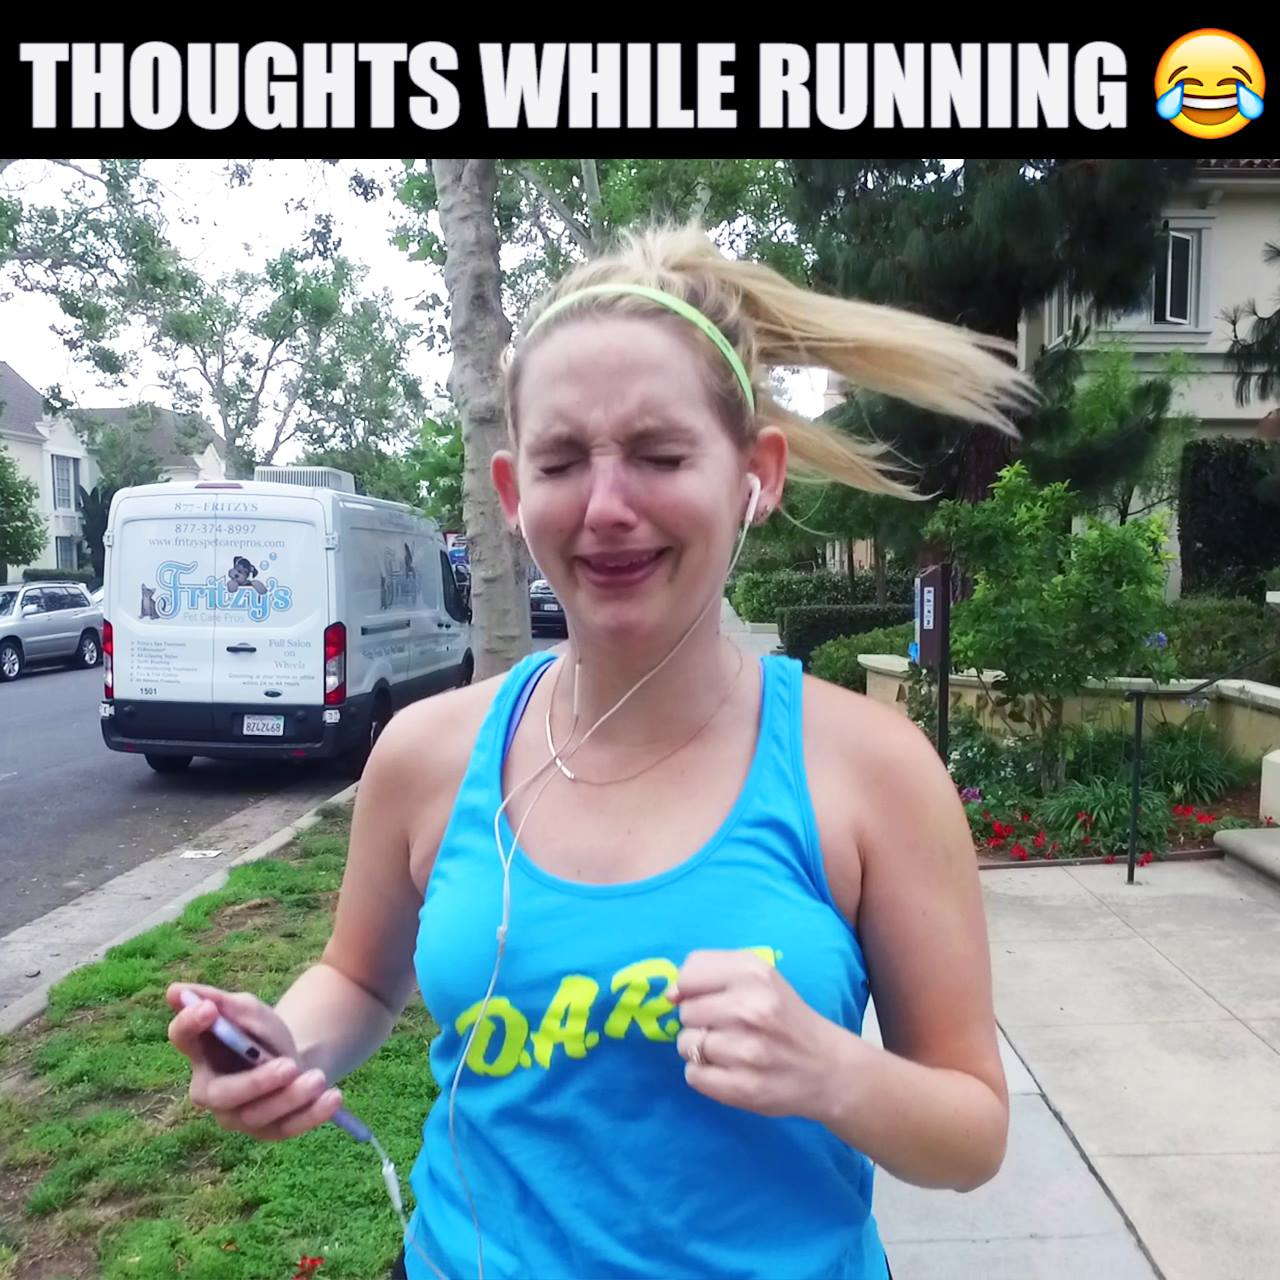 Thoughts You Have While Running